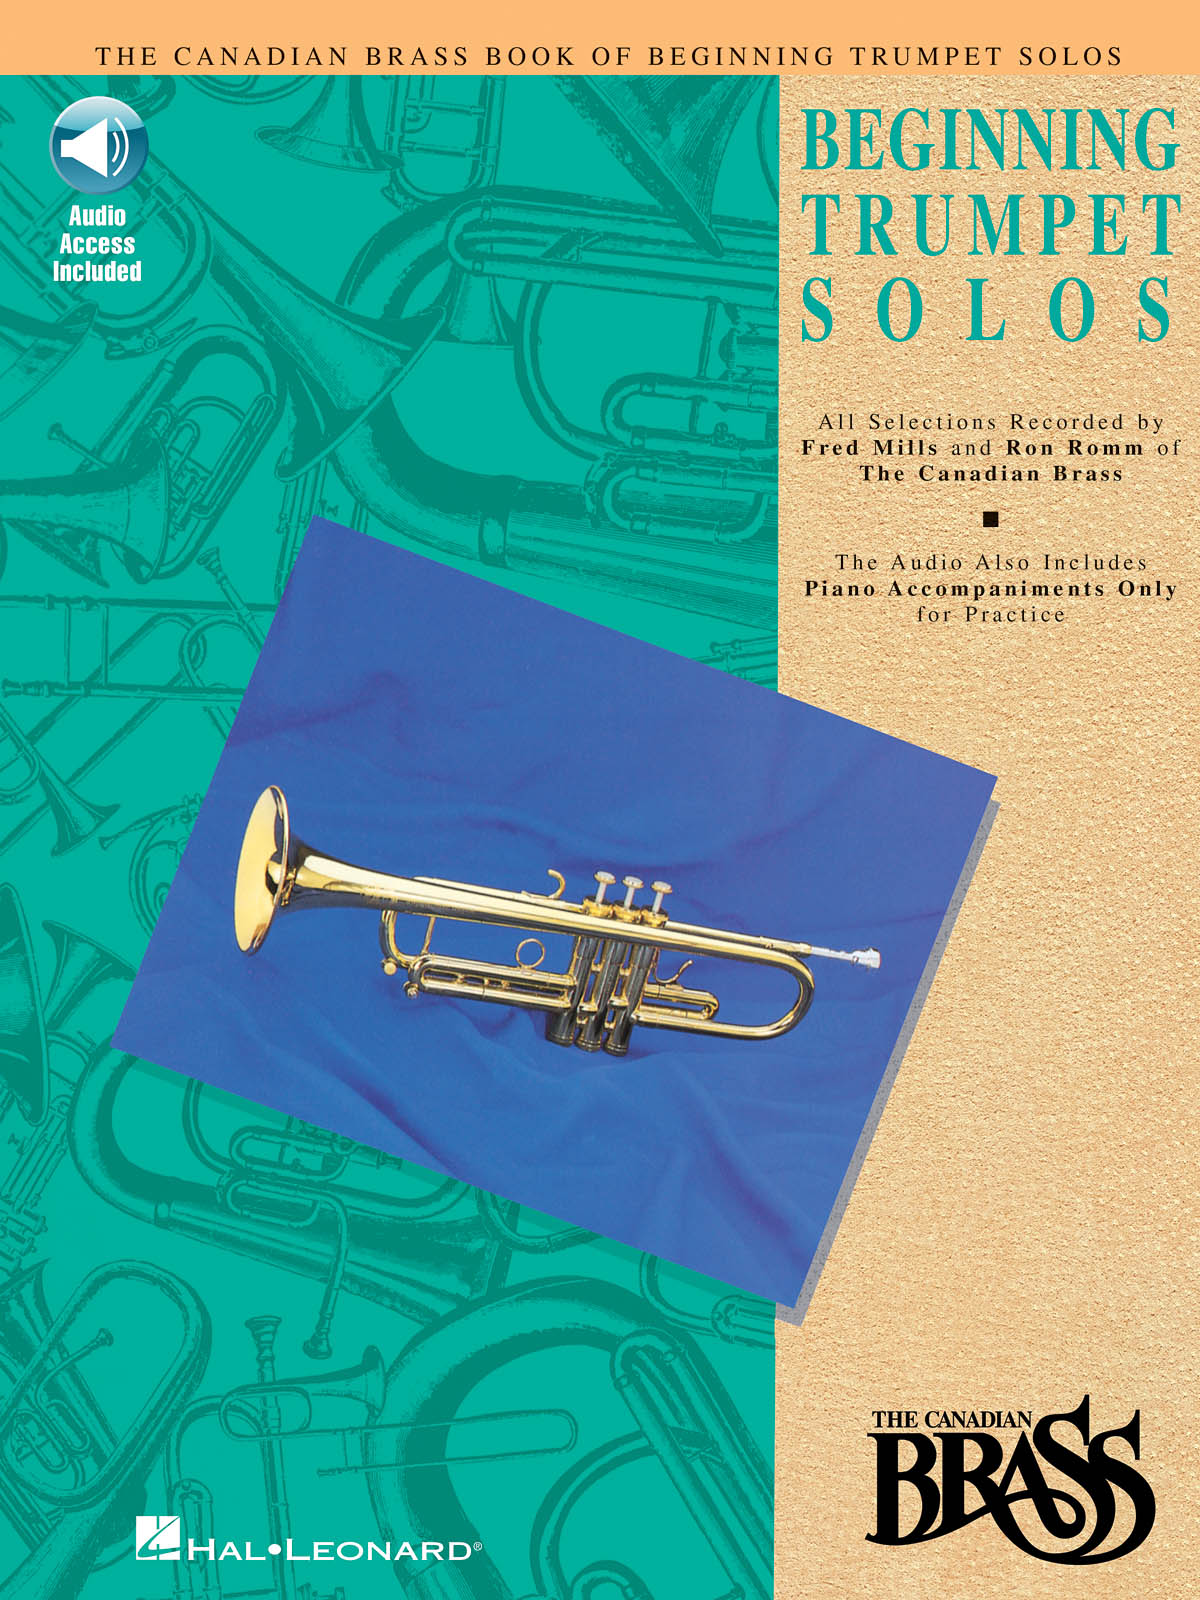 The Canadian Brass: Canadian Brass Book Of Beginning Trumpet Solos: Trumpet